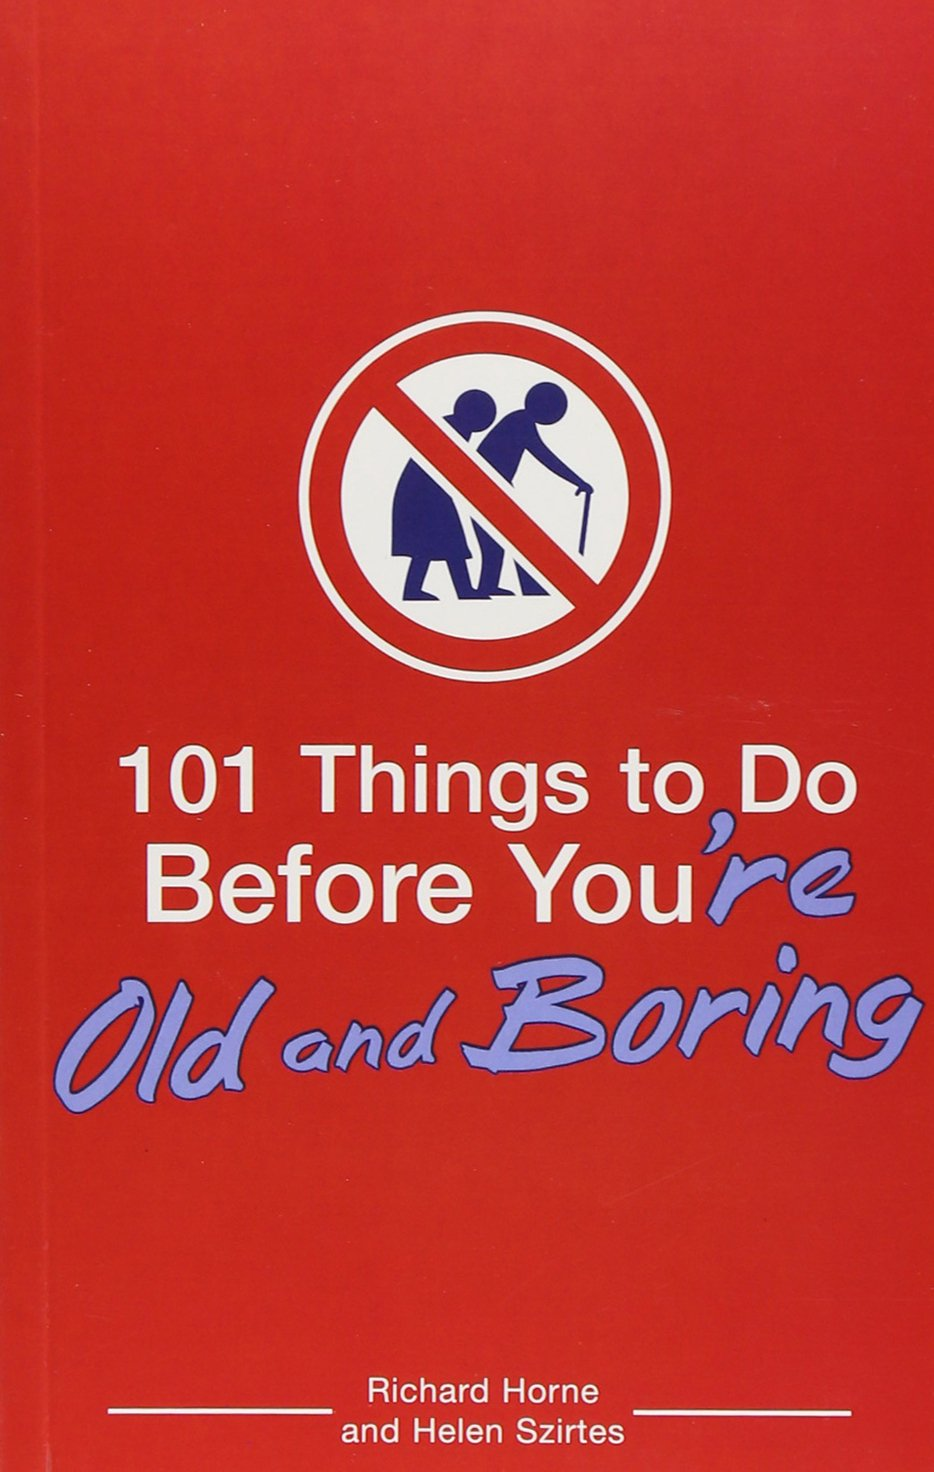 Download 101 Things to Do Before You're Old and Boring Text fb2 book